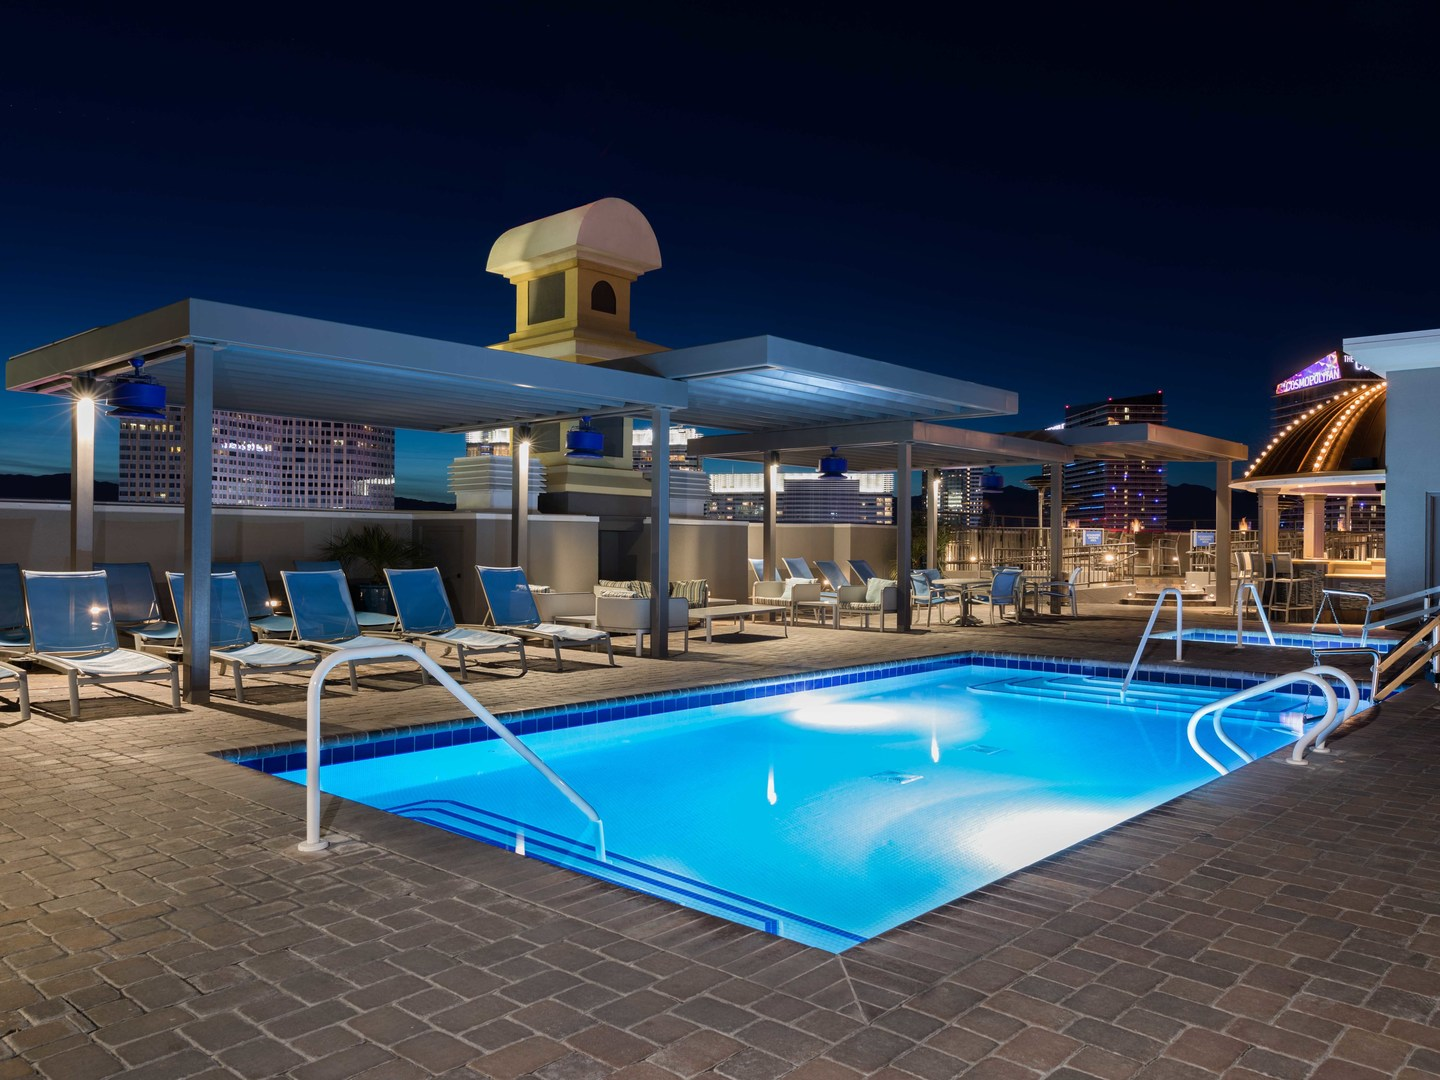 Marriott's Grand Chateau<span class='trademark'>®</span> Resort Roof Top Pool. Marriott's Grand Chateau<span class='trademark'>®</span> is located in Las Vegas, Nevada United States.